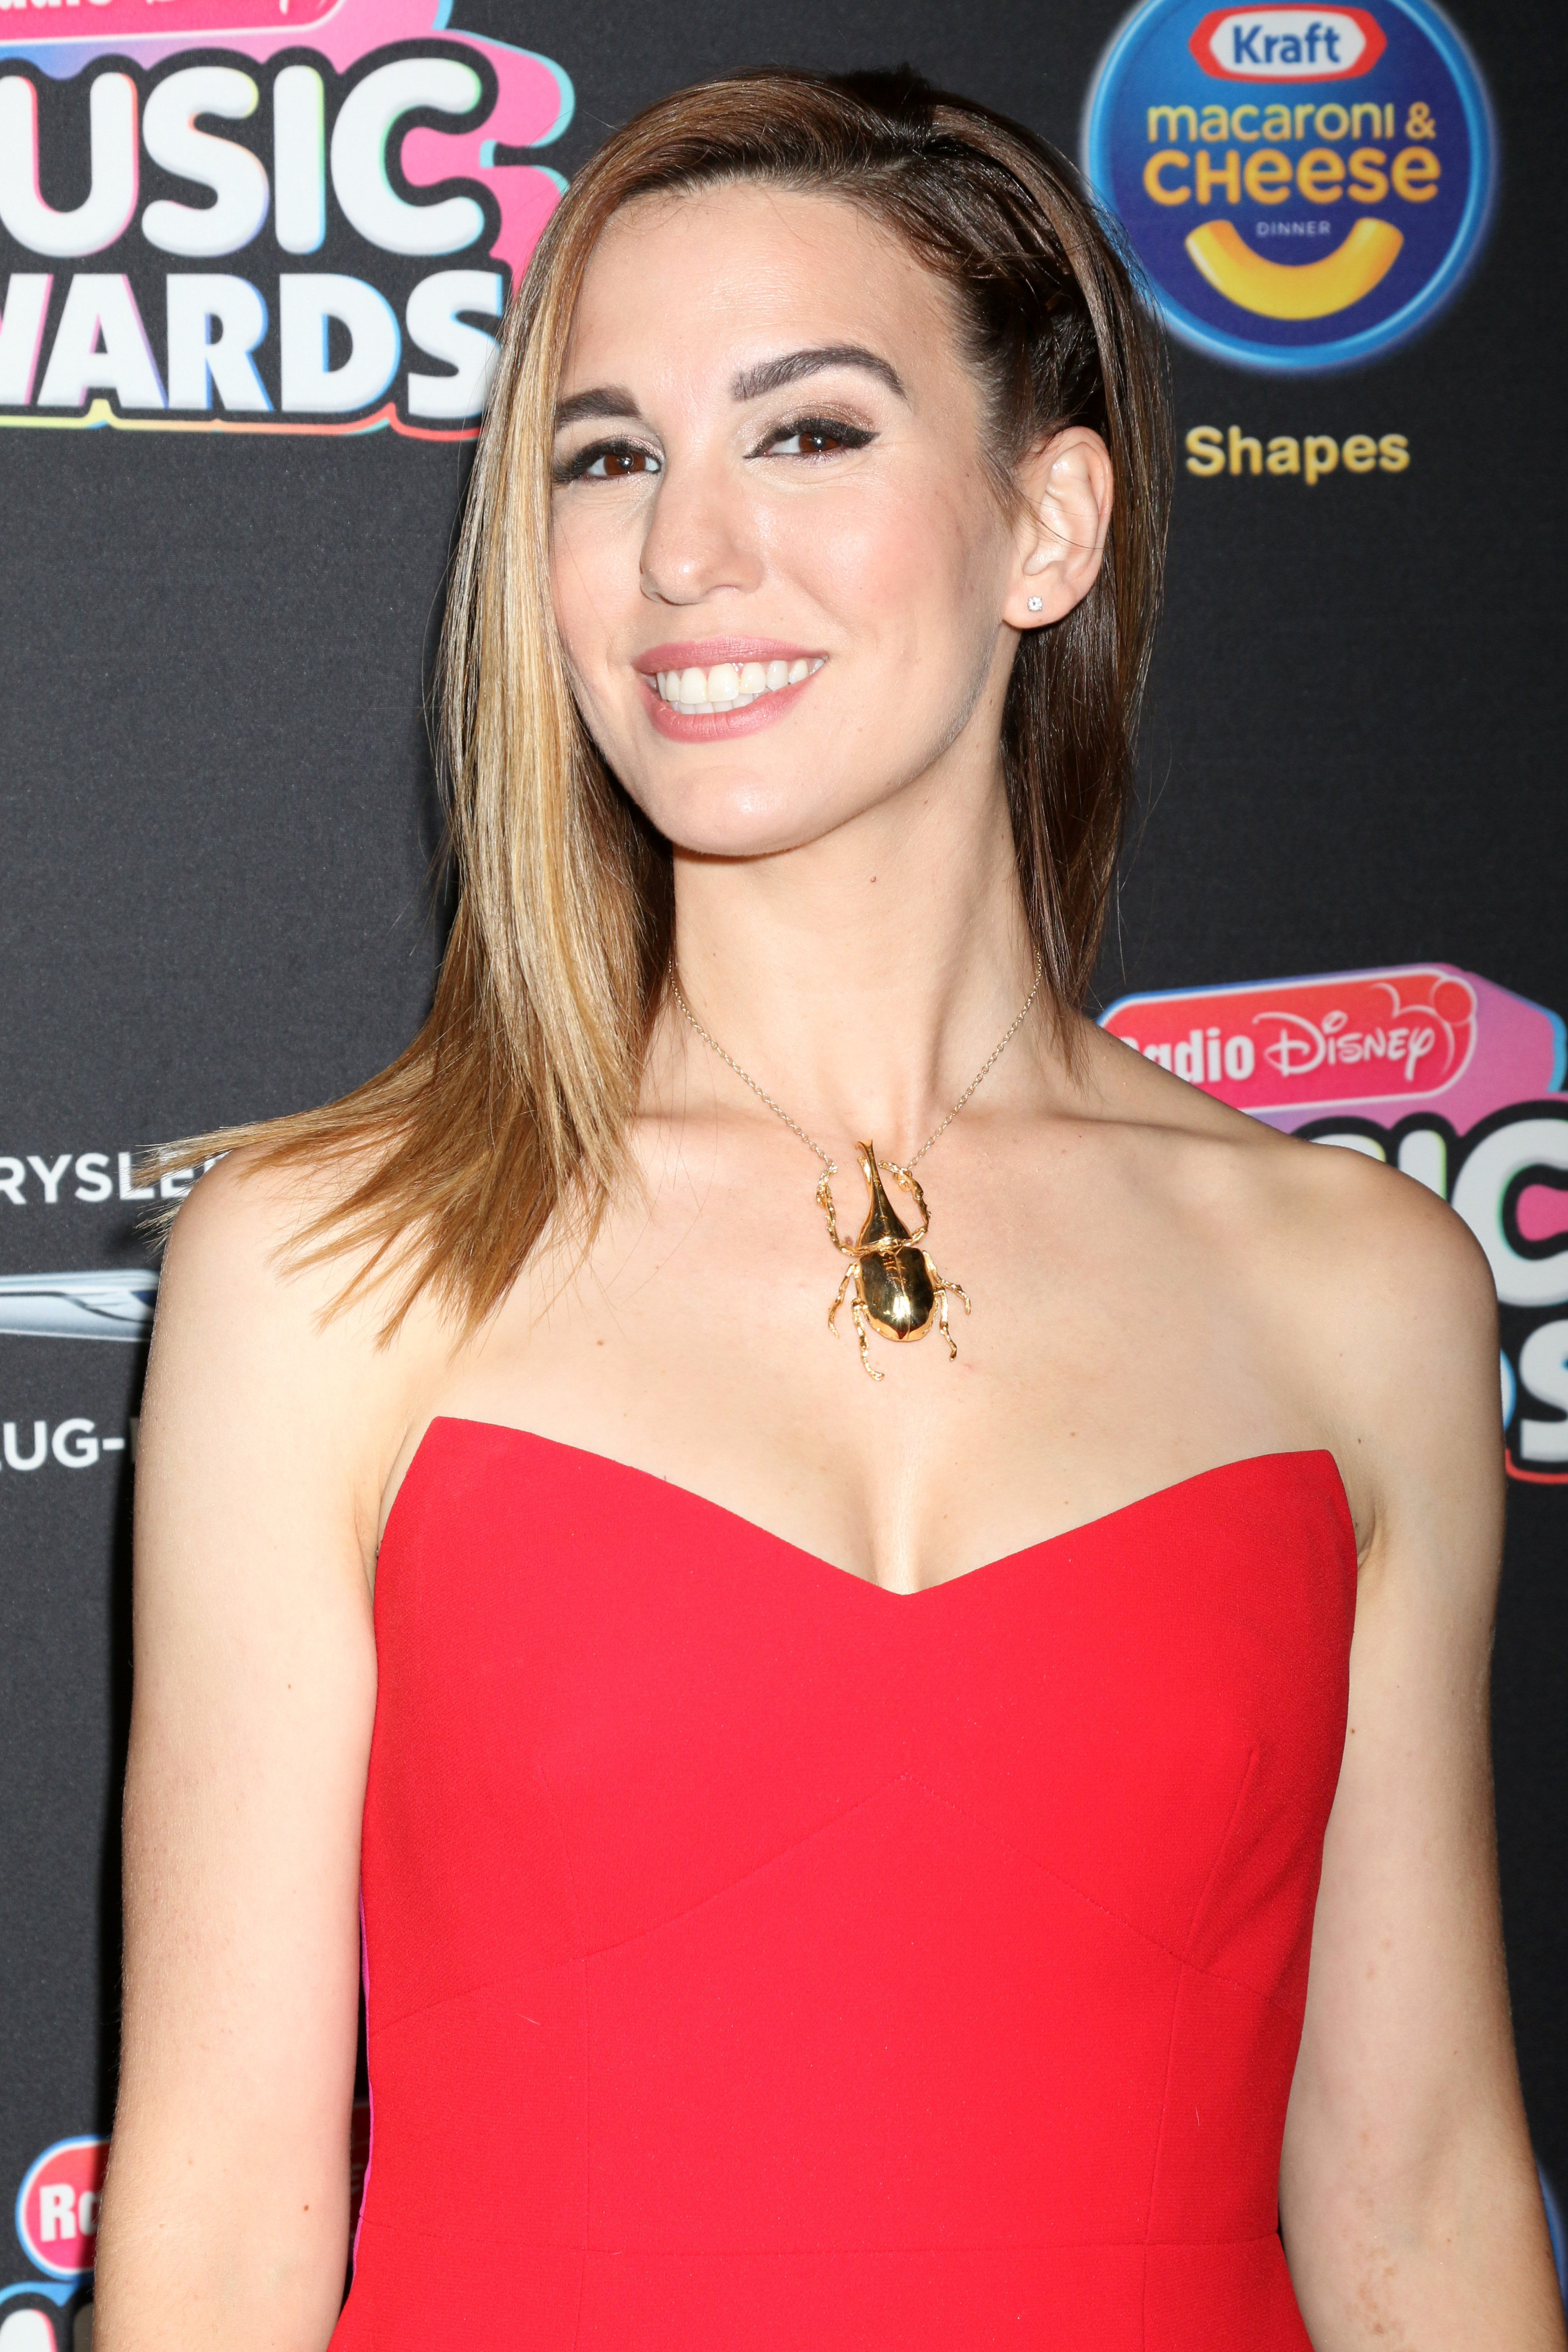 Christy Carlson Romano attends the 2018 Radio Disney Music Awards at the Loews Hotel on June 22, 2018 in Los Angeles, California   Photo: Shutterstock